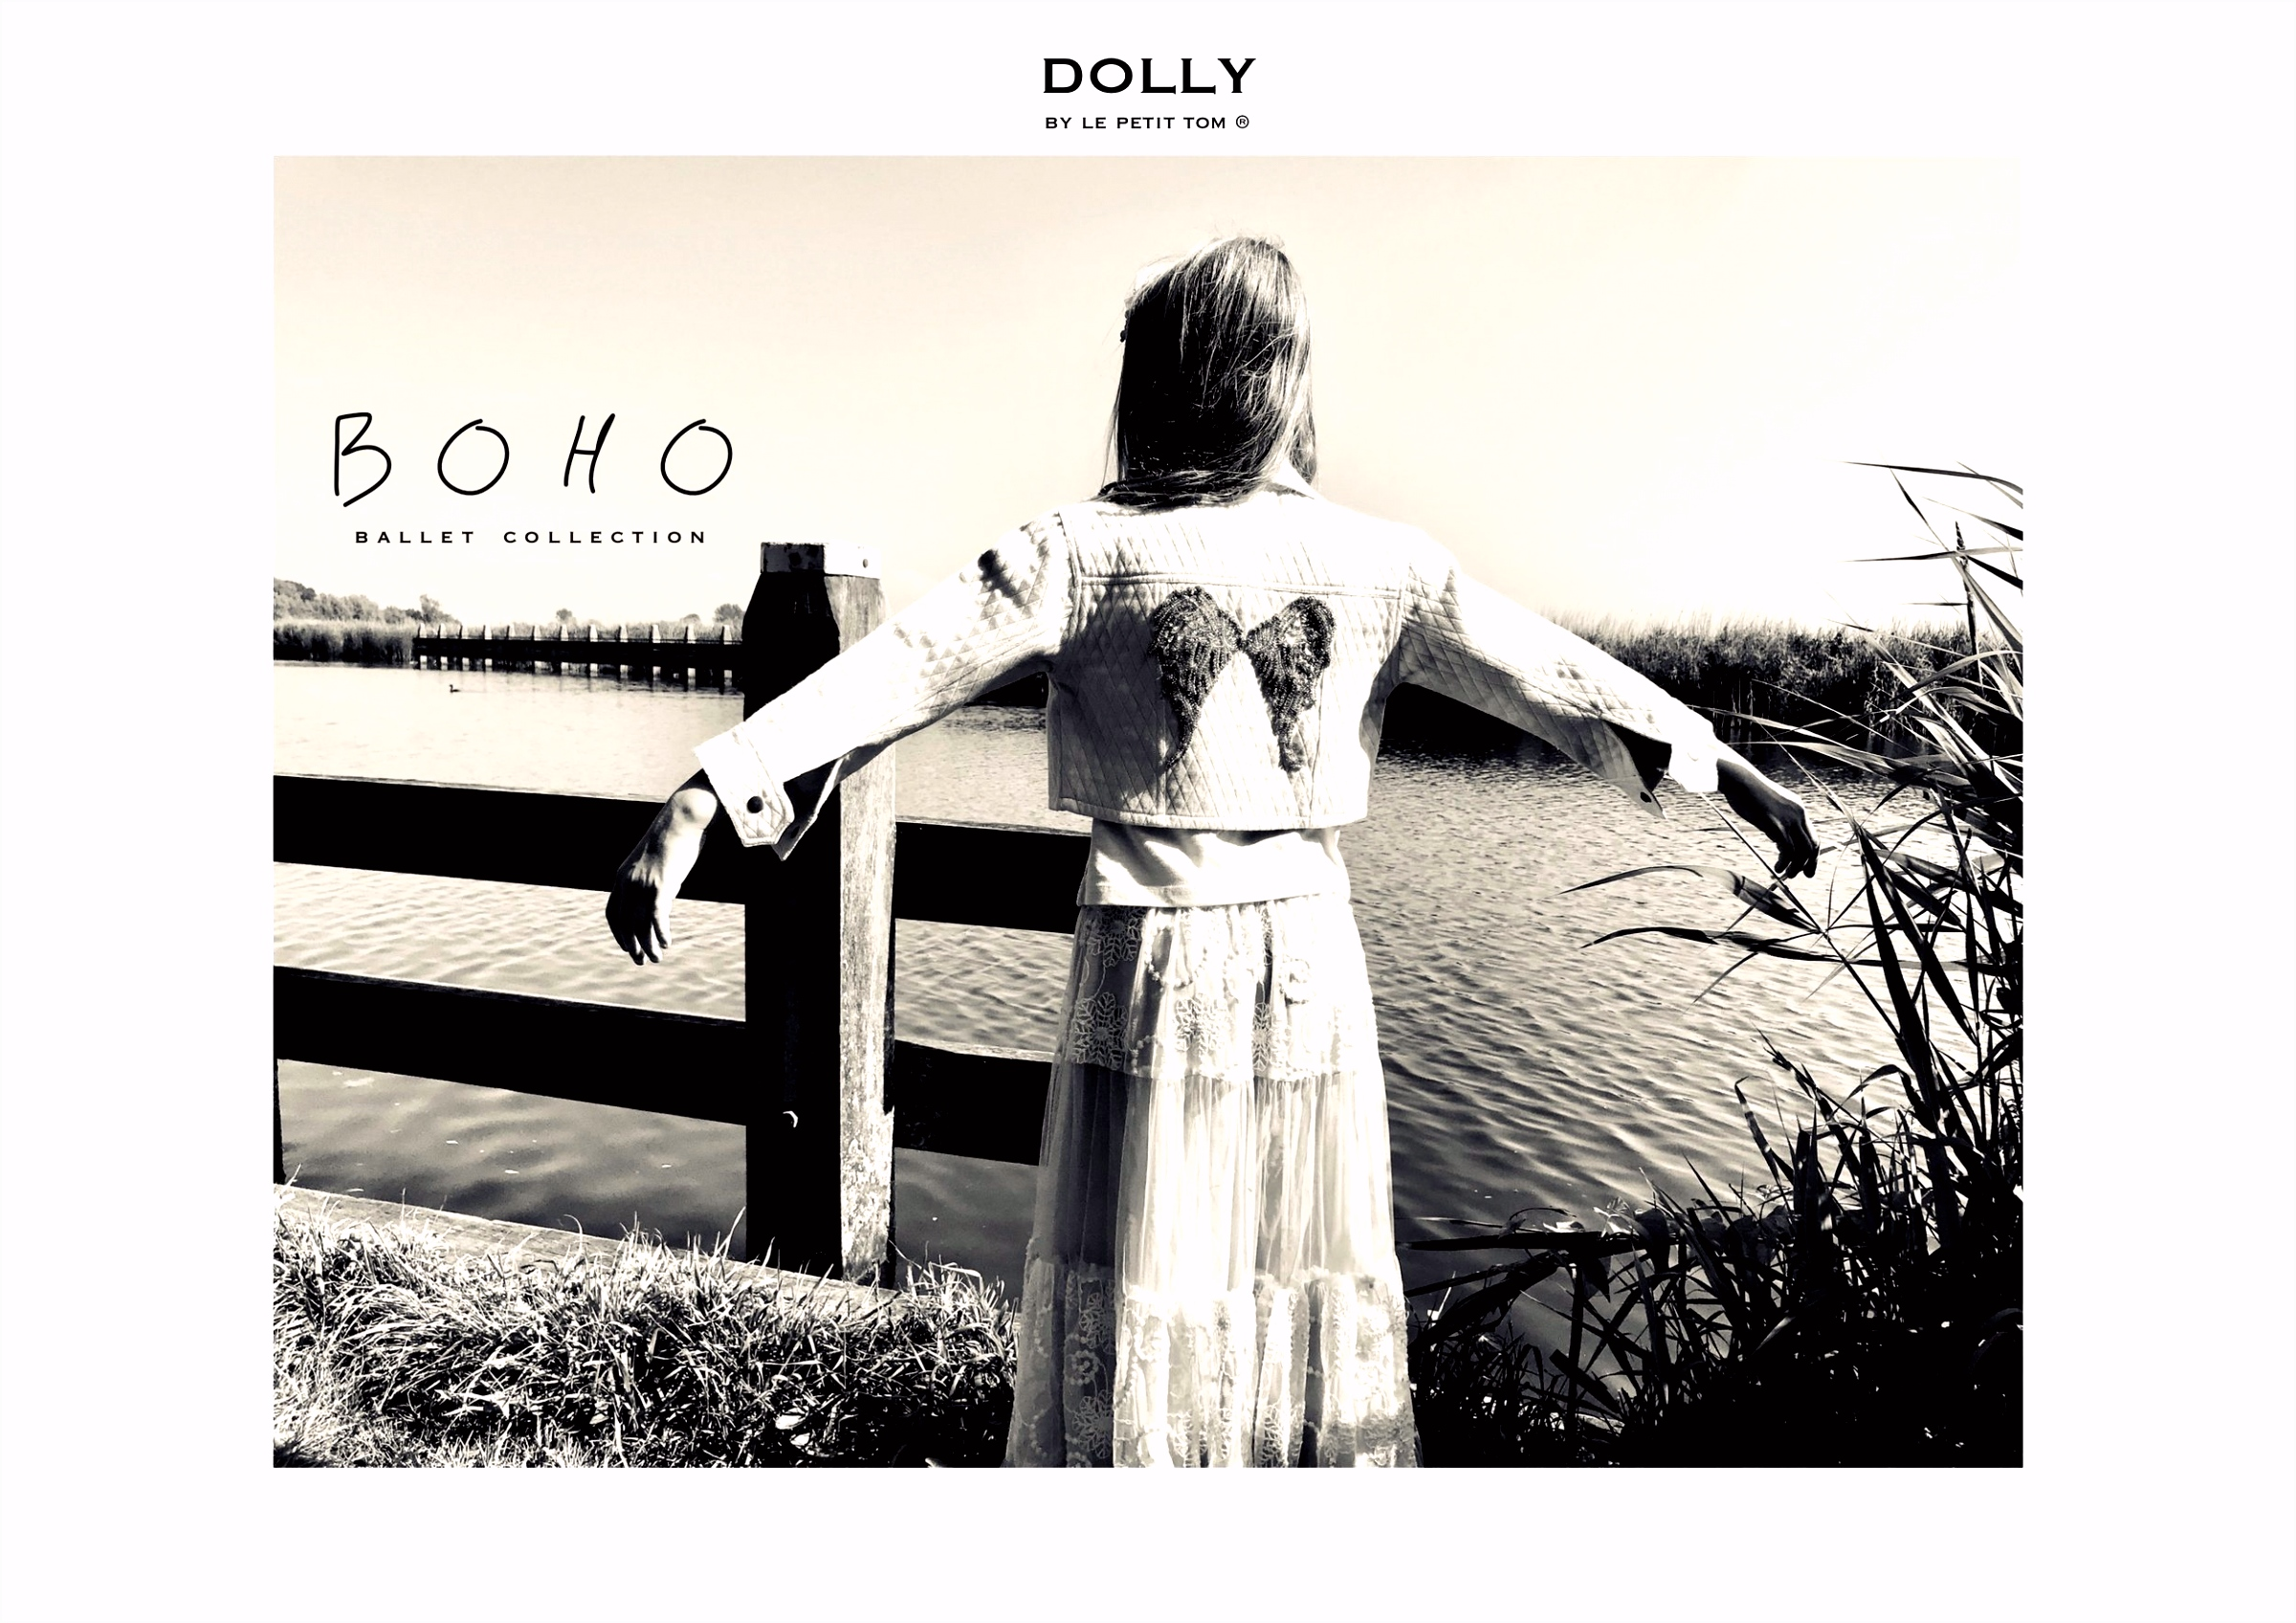 DOLLY by Le Petit Tom '